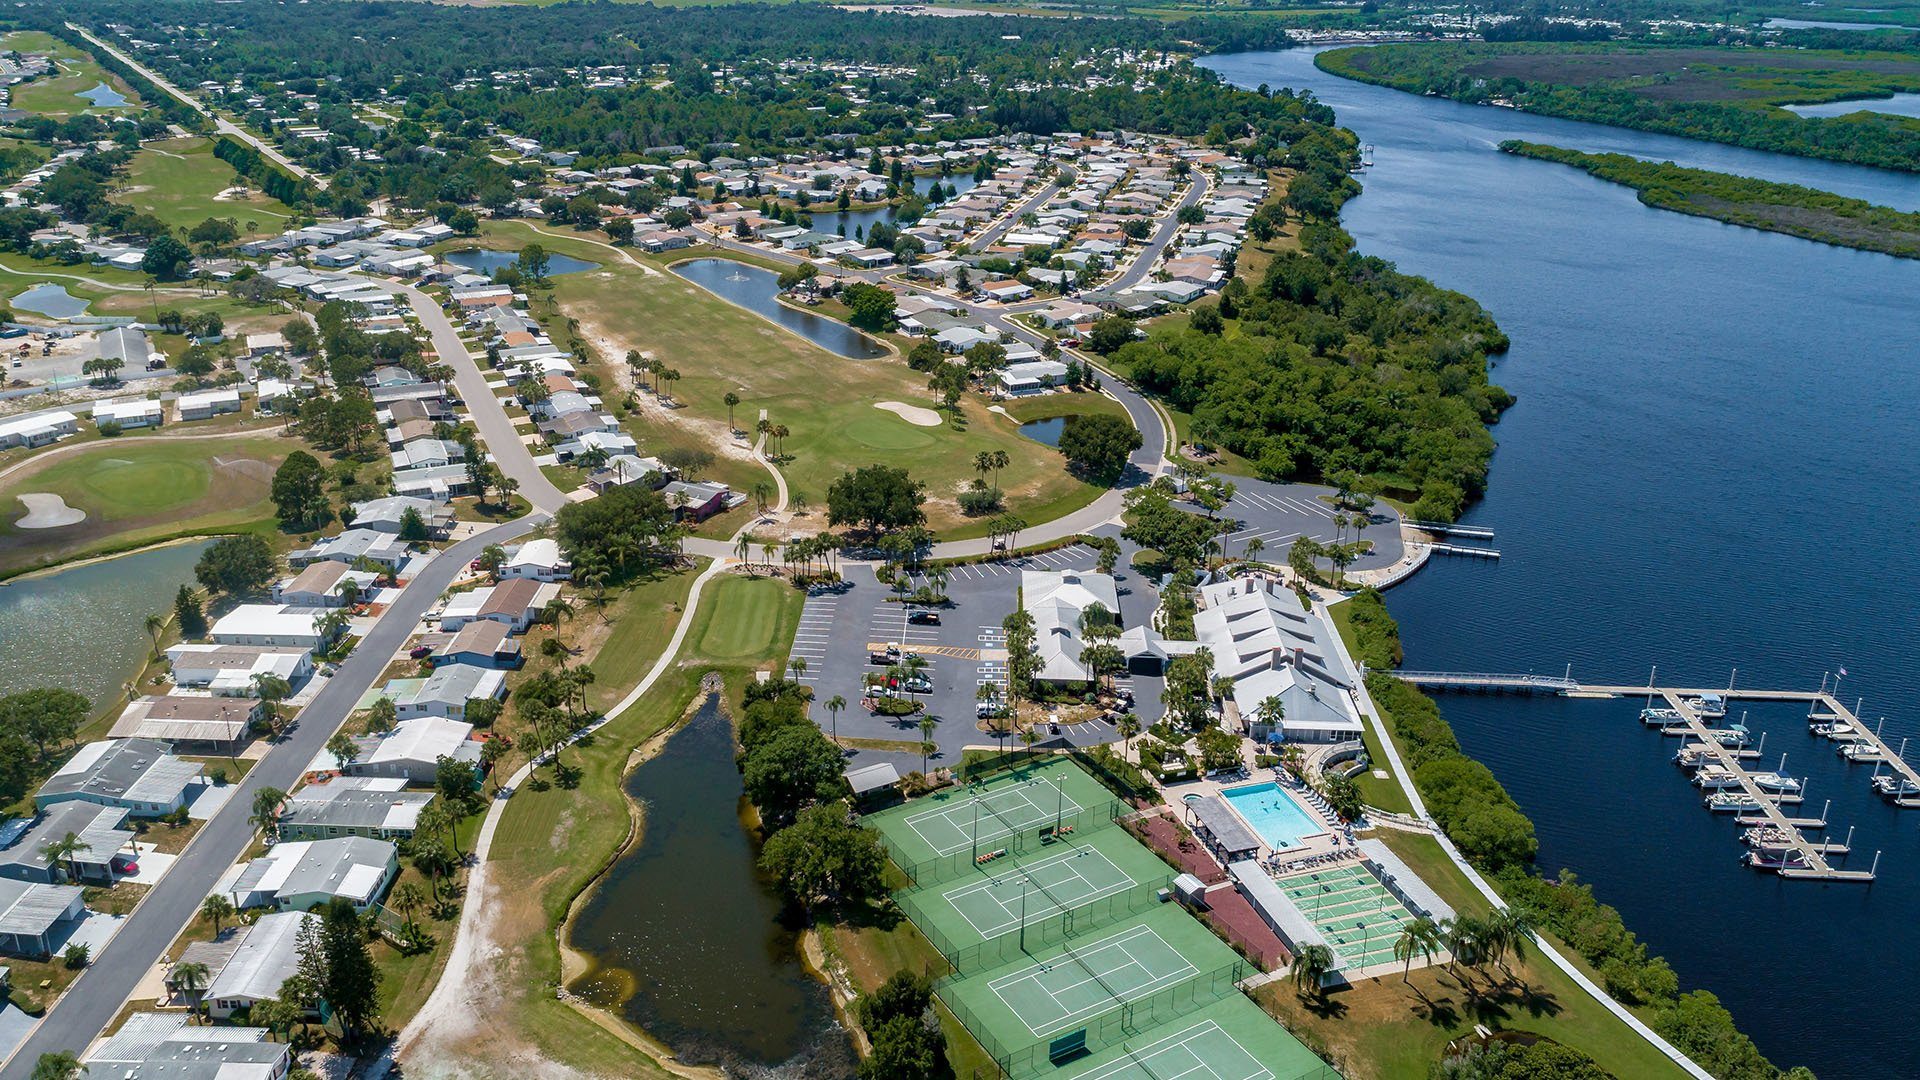 Riverside Club 55+ Golf, Marina and Manufactured Homes Community Aerial View in Ruskin, FL